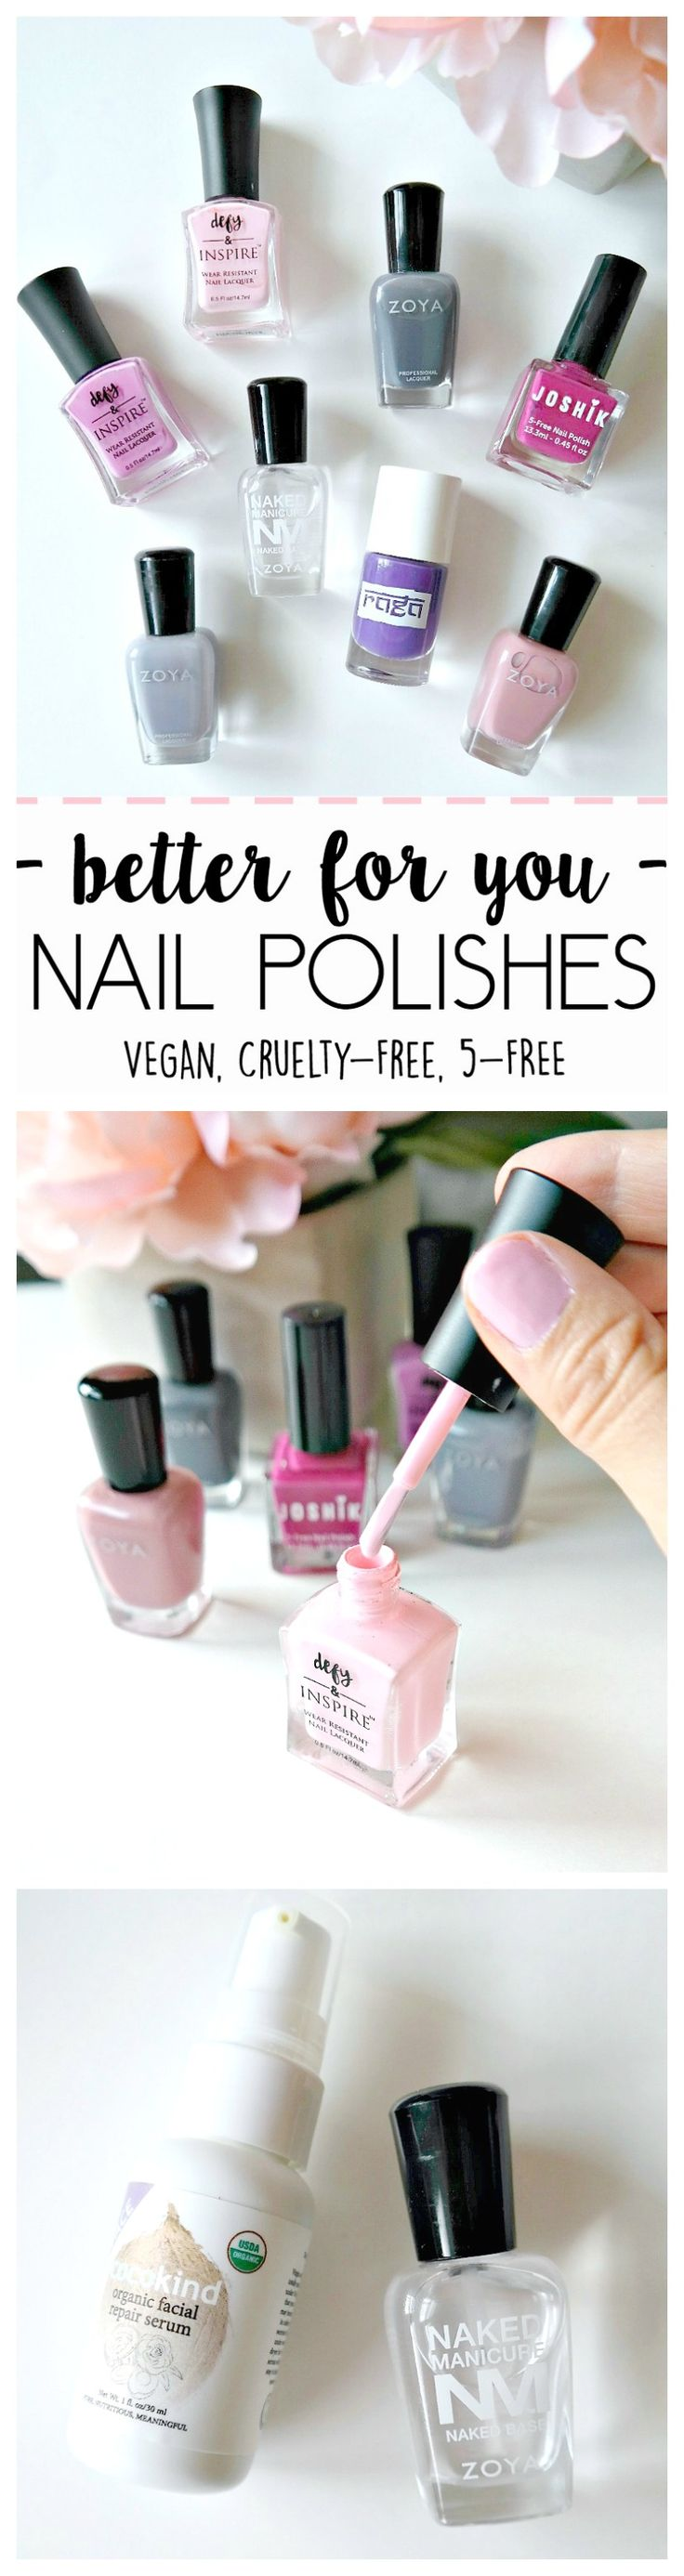 "A 'Better For You' Nail Polish List. Vegan, Cruelty-Free and ""5-Free"". The best brands that are healthier for us and the environment, PLUS my mani-pedi routine. #5free #nail #polish #vegan"